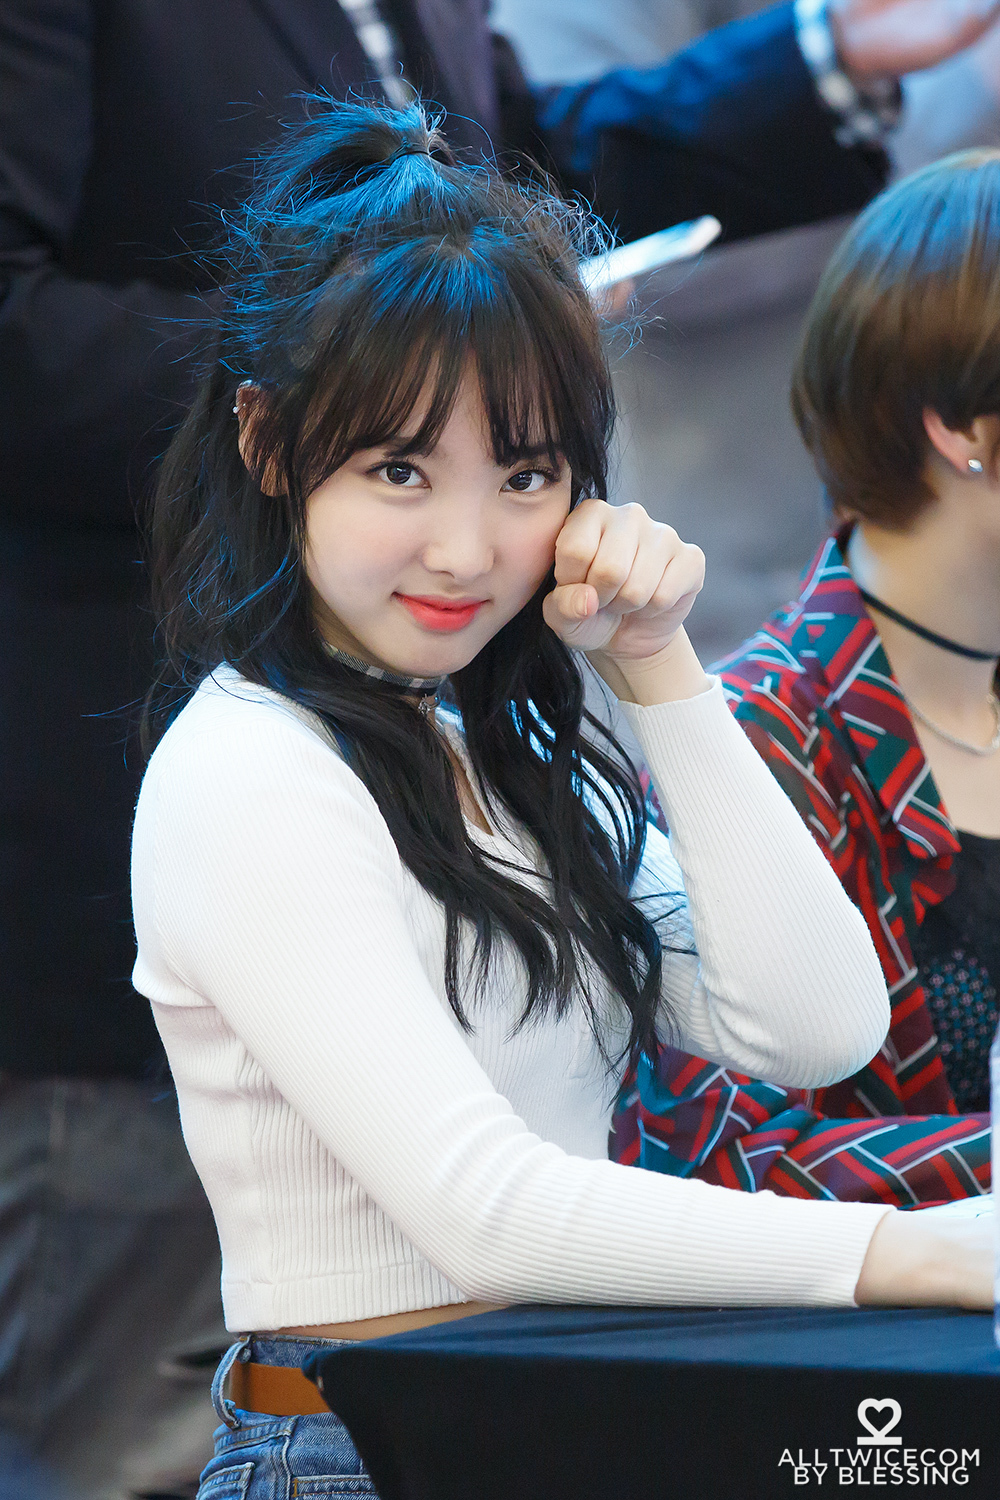 Twice S Nayeon Wins The Hearts Of Fans With Impressive